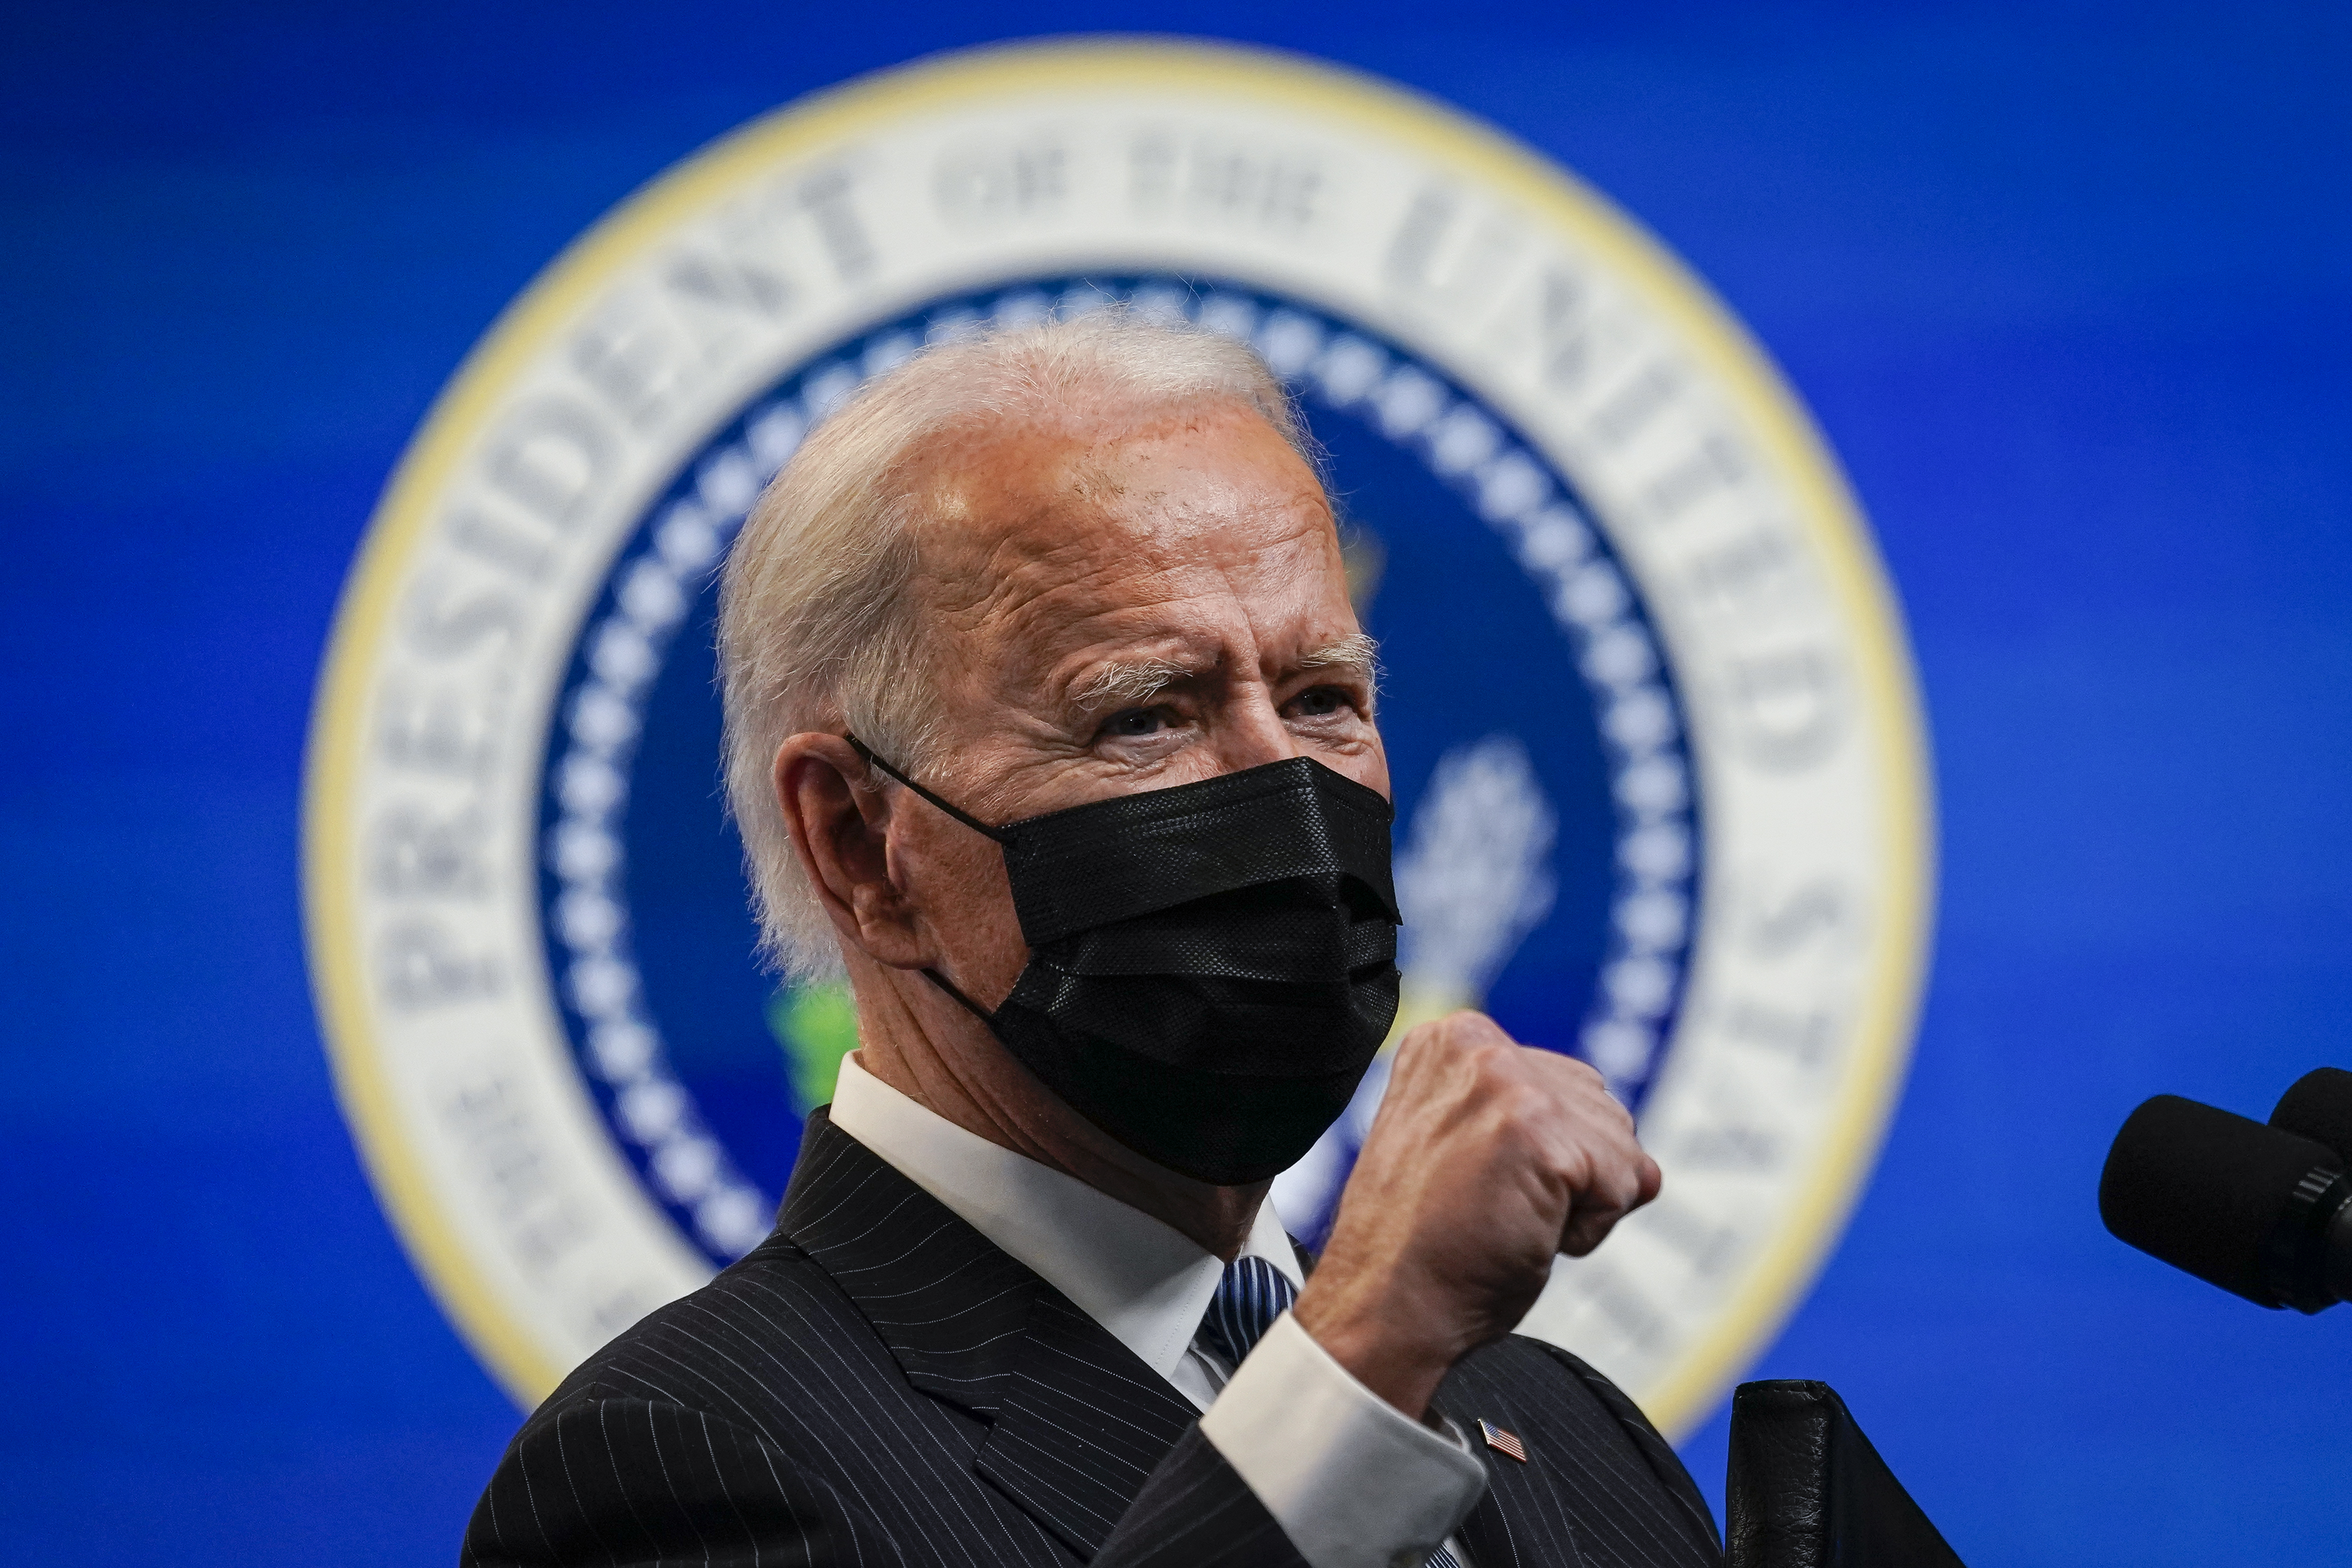 President Joe Biden wears a mask and holds a fist in front of him while speaking at a White House event.